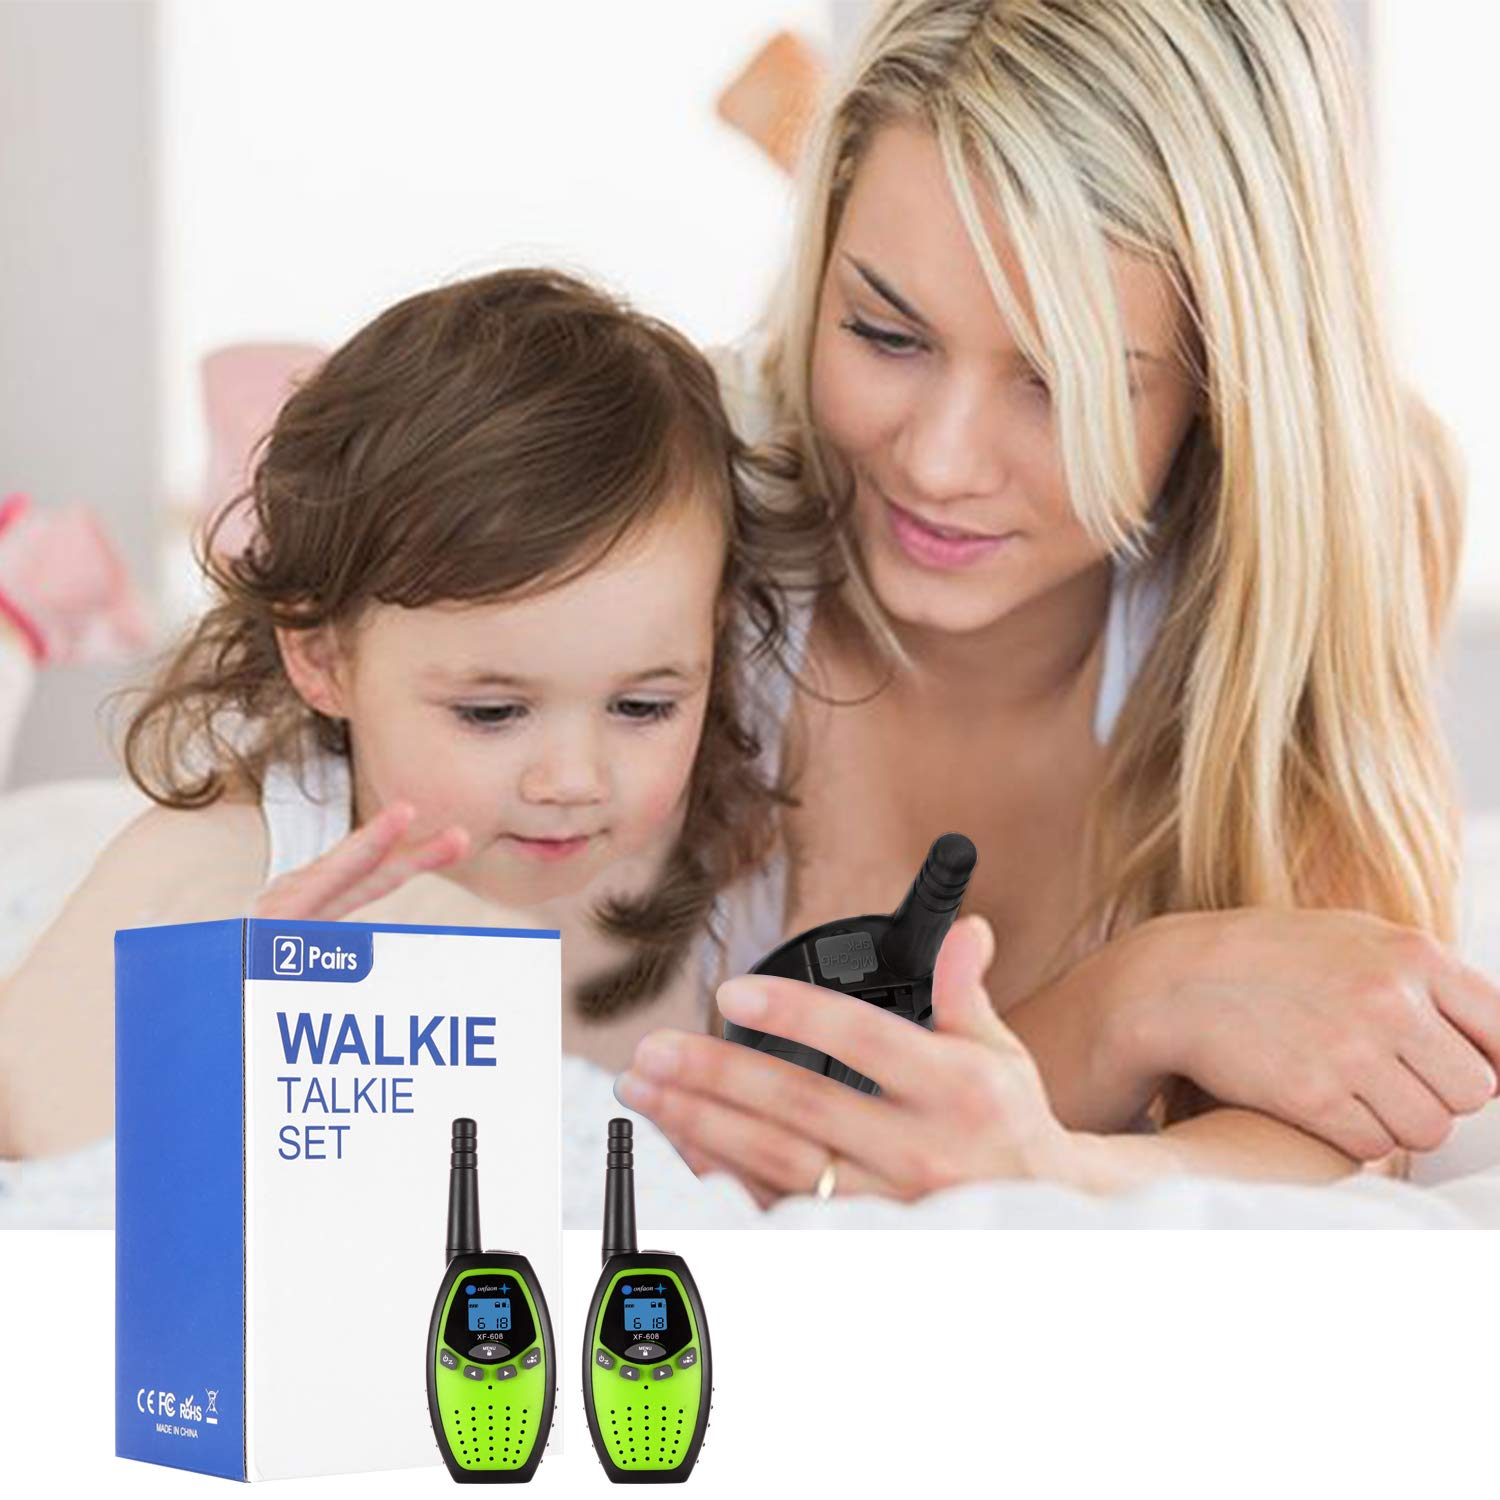 onfaon Walkies Talkies for Kids,22 Channels 2 Way Radios Long Range with Automatic Battery Save,Range Up to 2 Miles for Camping,Hiking,Fishing,Outdoor Activities. (Green) by ONFAON (Image #4)